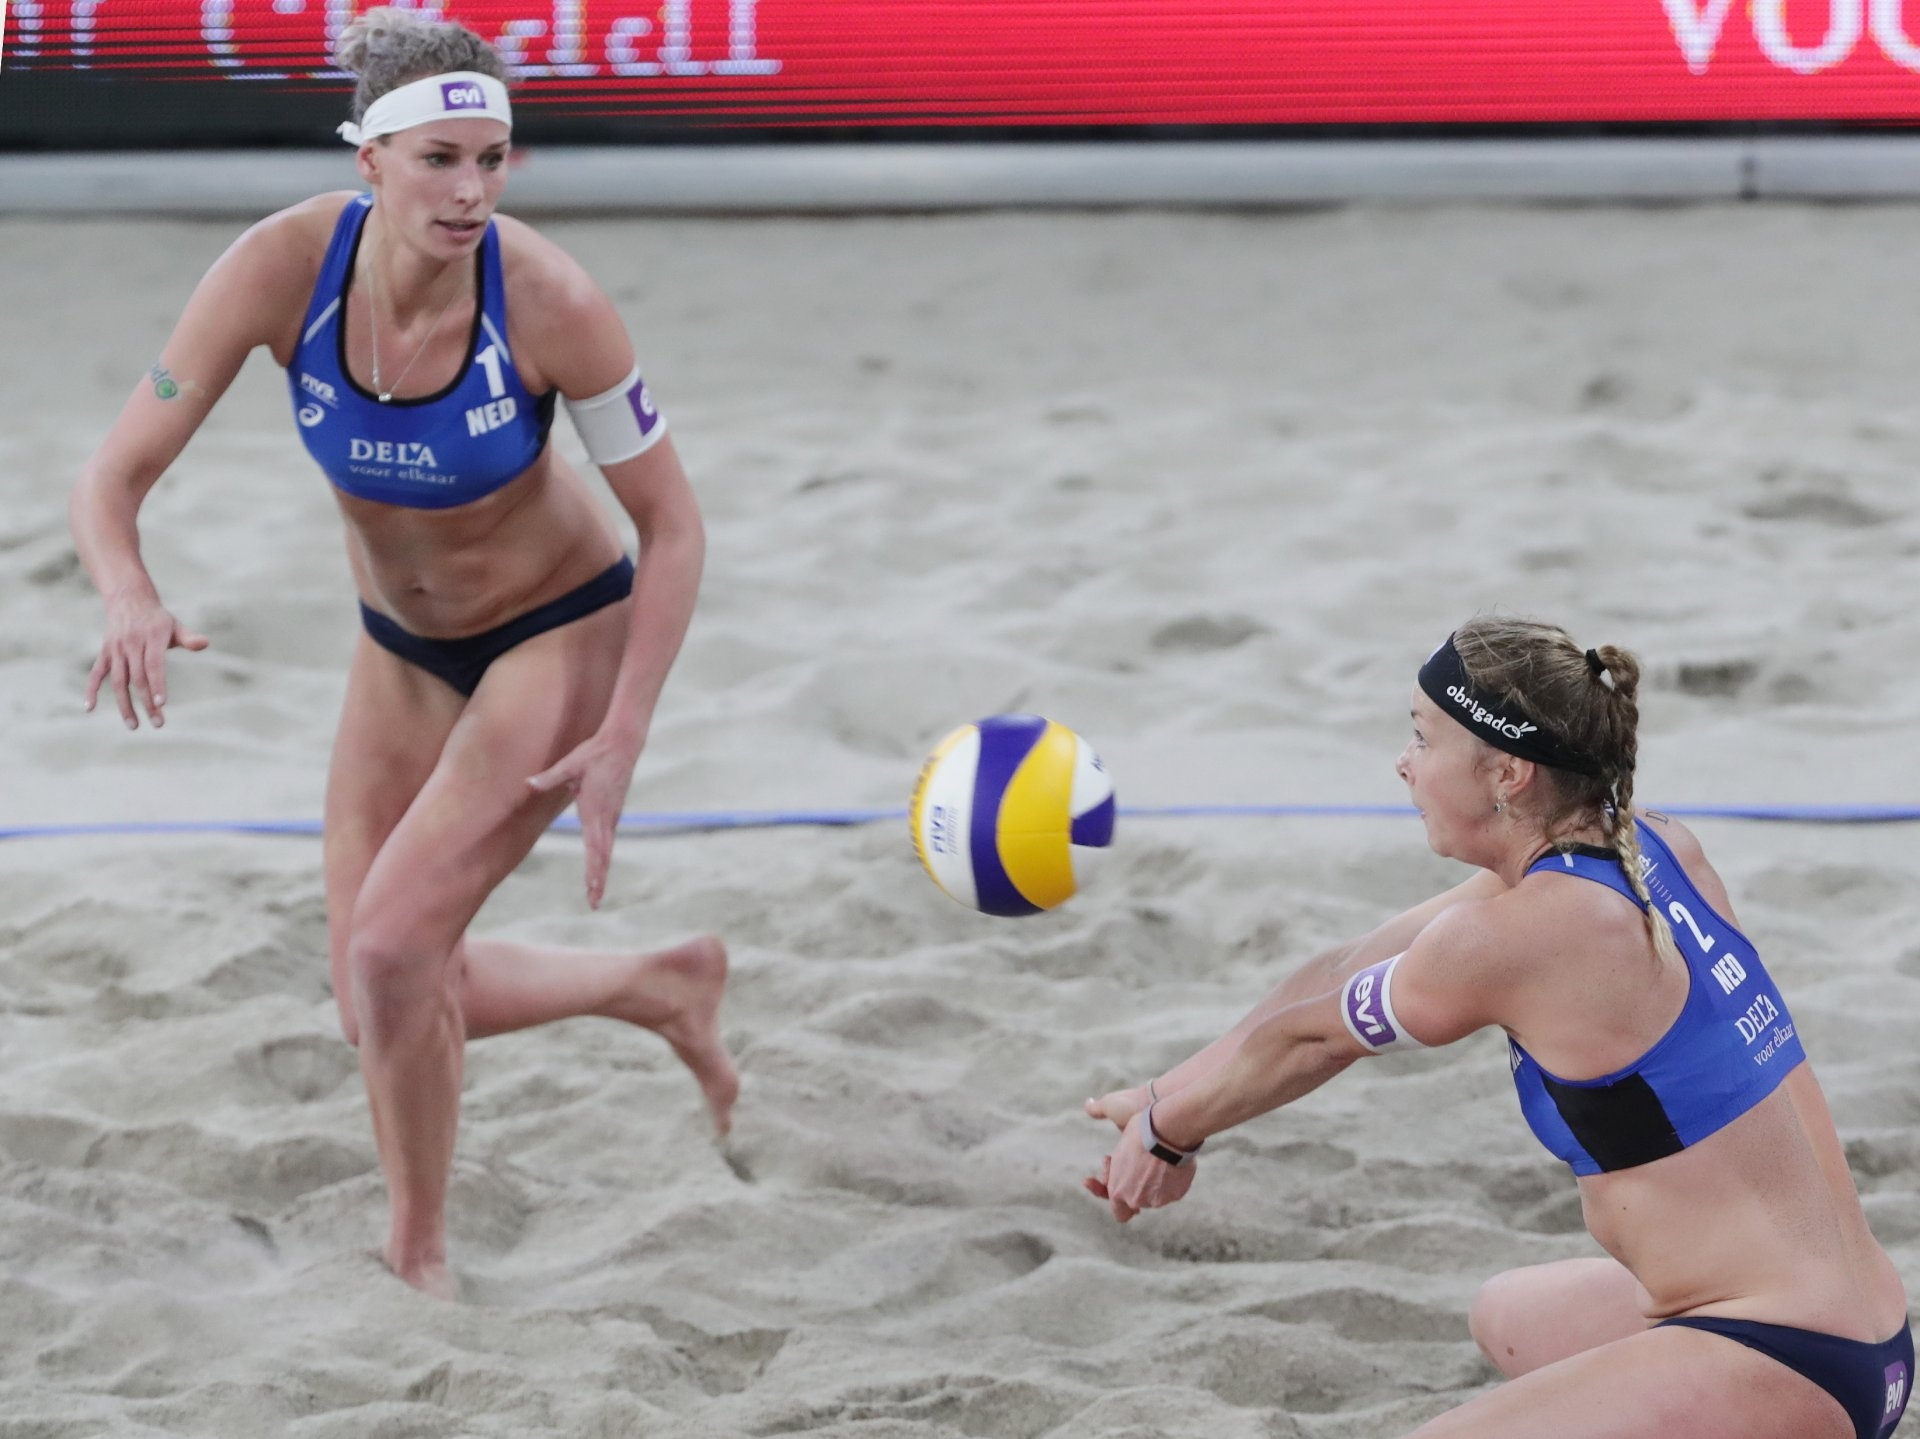 Keizer (left) and Meppelink kicked off their 2018 season with a 17th place in The Hague (Photocredit: FIVB)